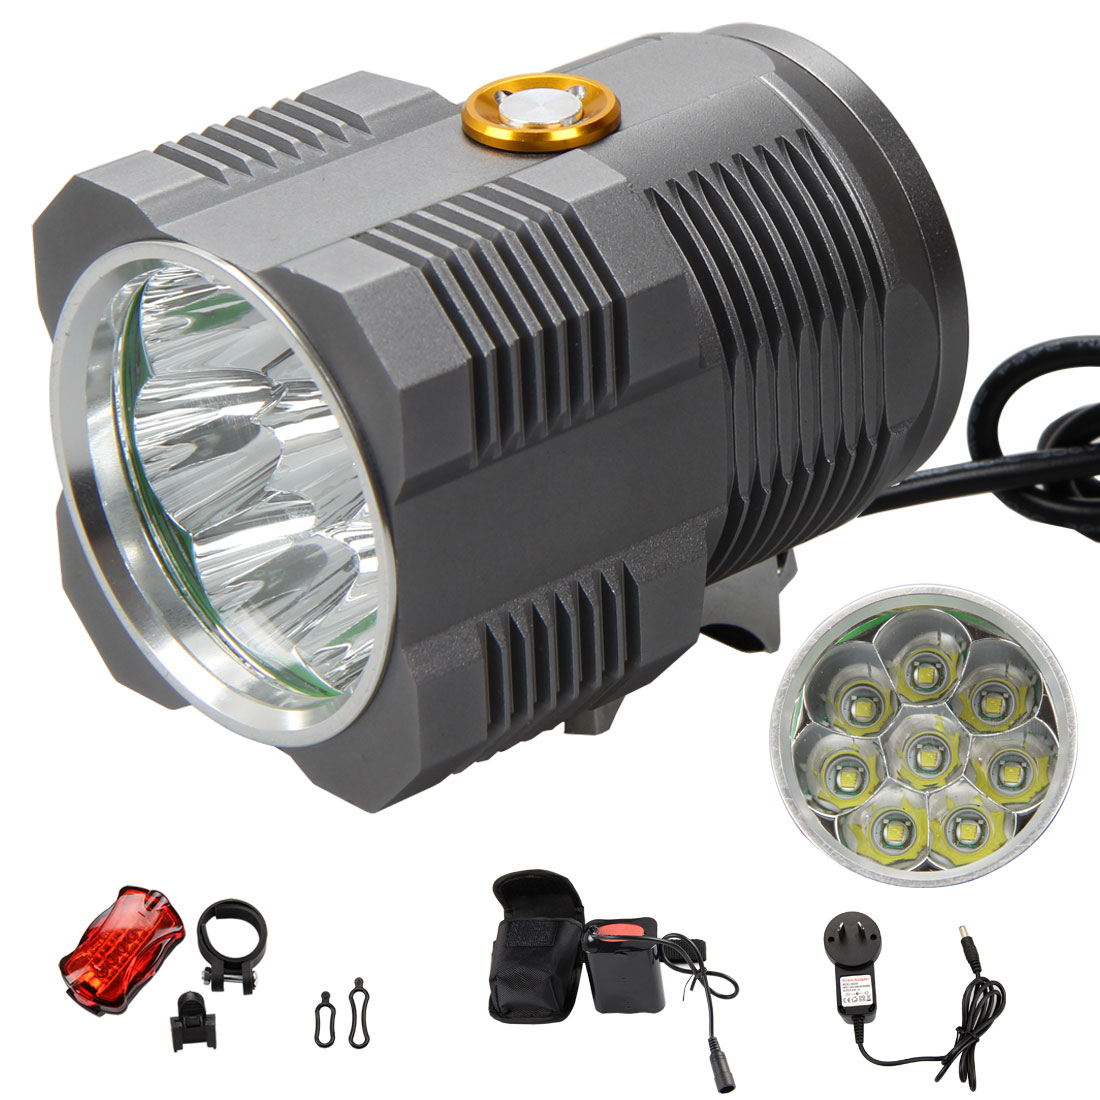 Super Bright 13000Lm 8x XM-L T6 LED Front Bicycle Light Bike Lamp Headlight+6400mAh Battery Pack+AC Charger+Rear Light cree xm l t6 bicycle light 6000lumens bike light 7modes torch zoomable led flashlight 18650 battery charger bicycle clip